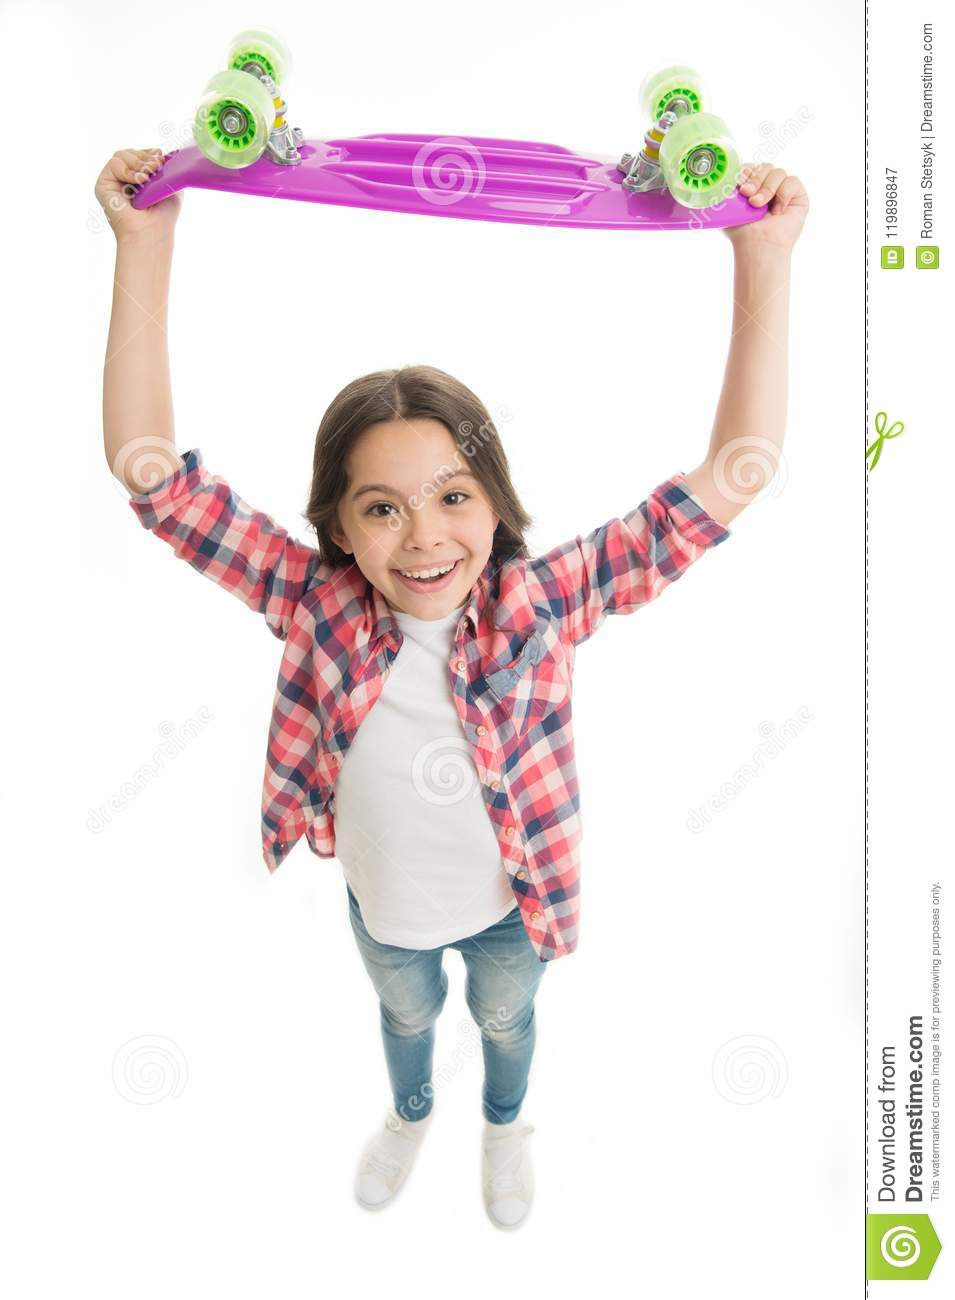 Best gift ever. Kid girl happy raising penny board. Child likes plastic  skateboard as gift. Modern teen hobby. How to ride penny board.